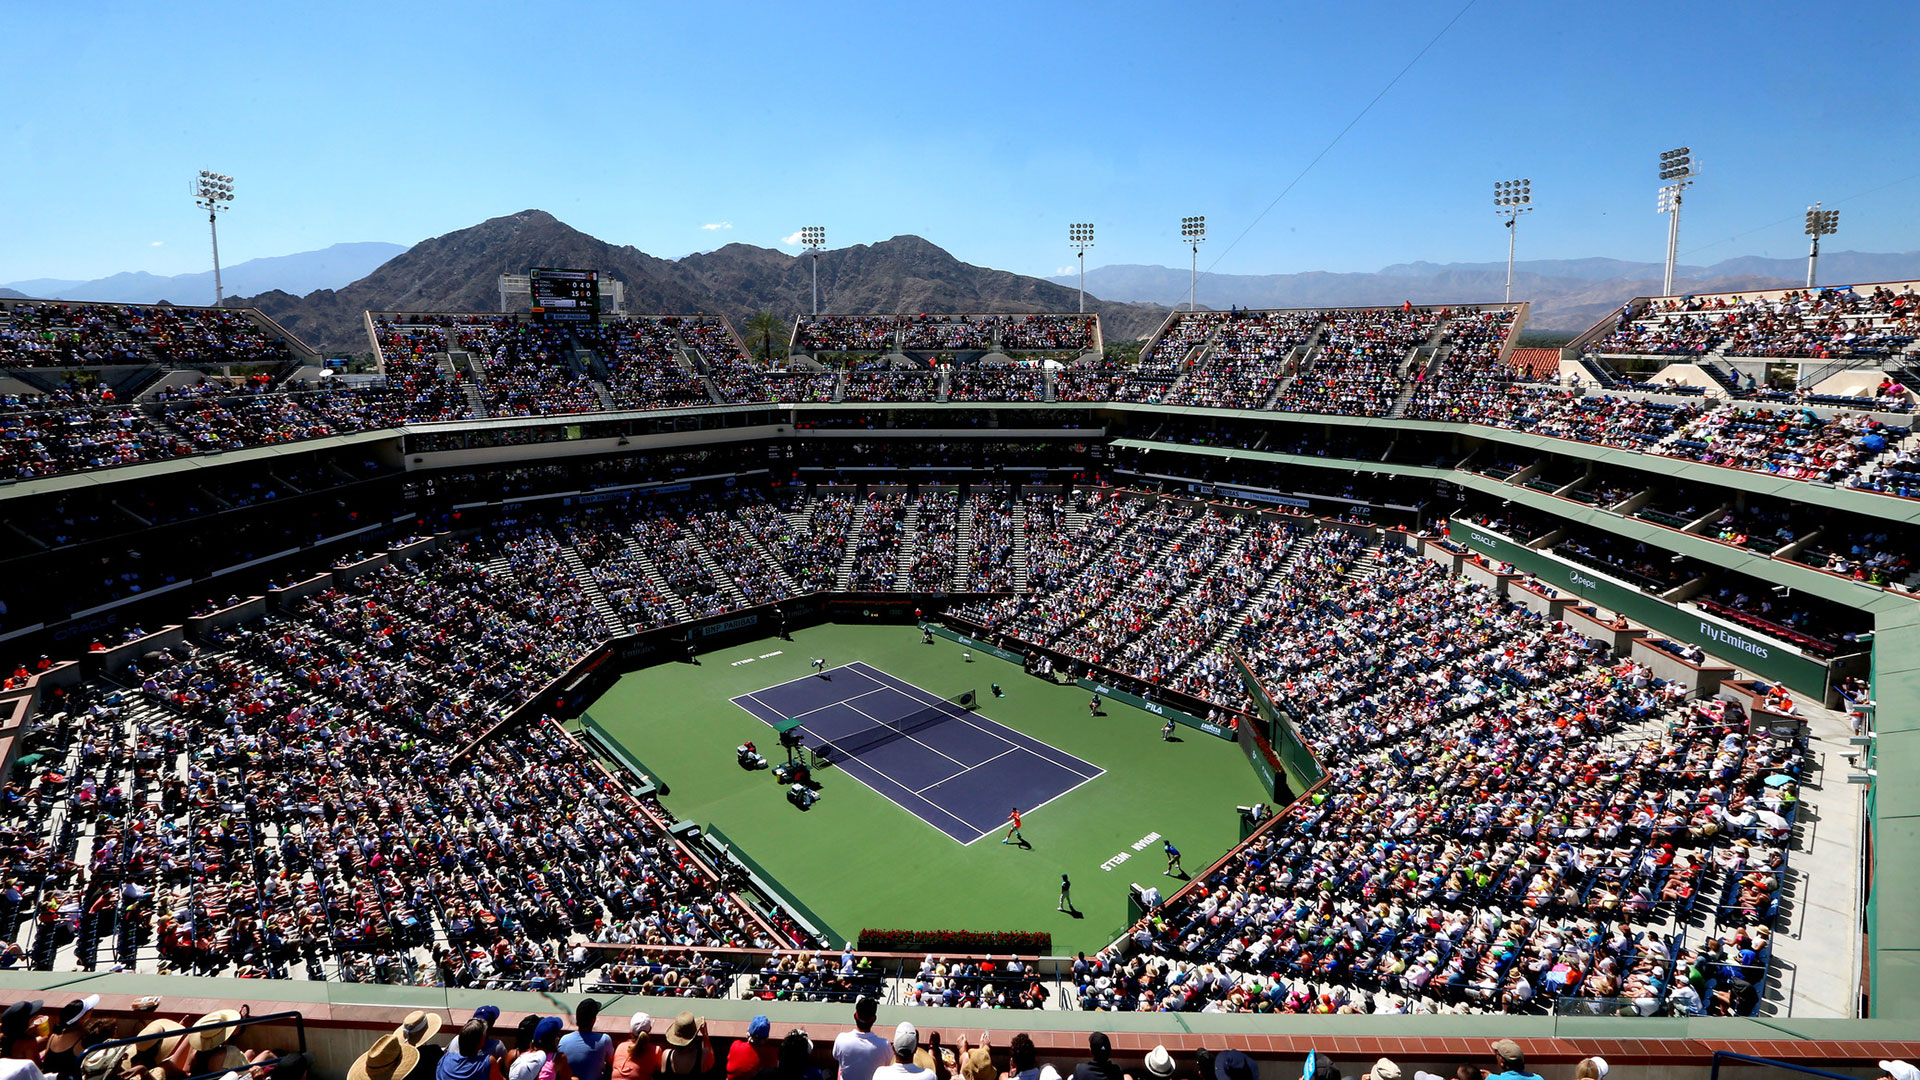 the stadium during the BNP Paribas